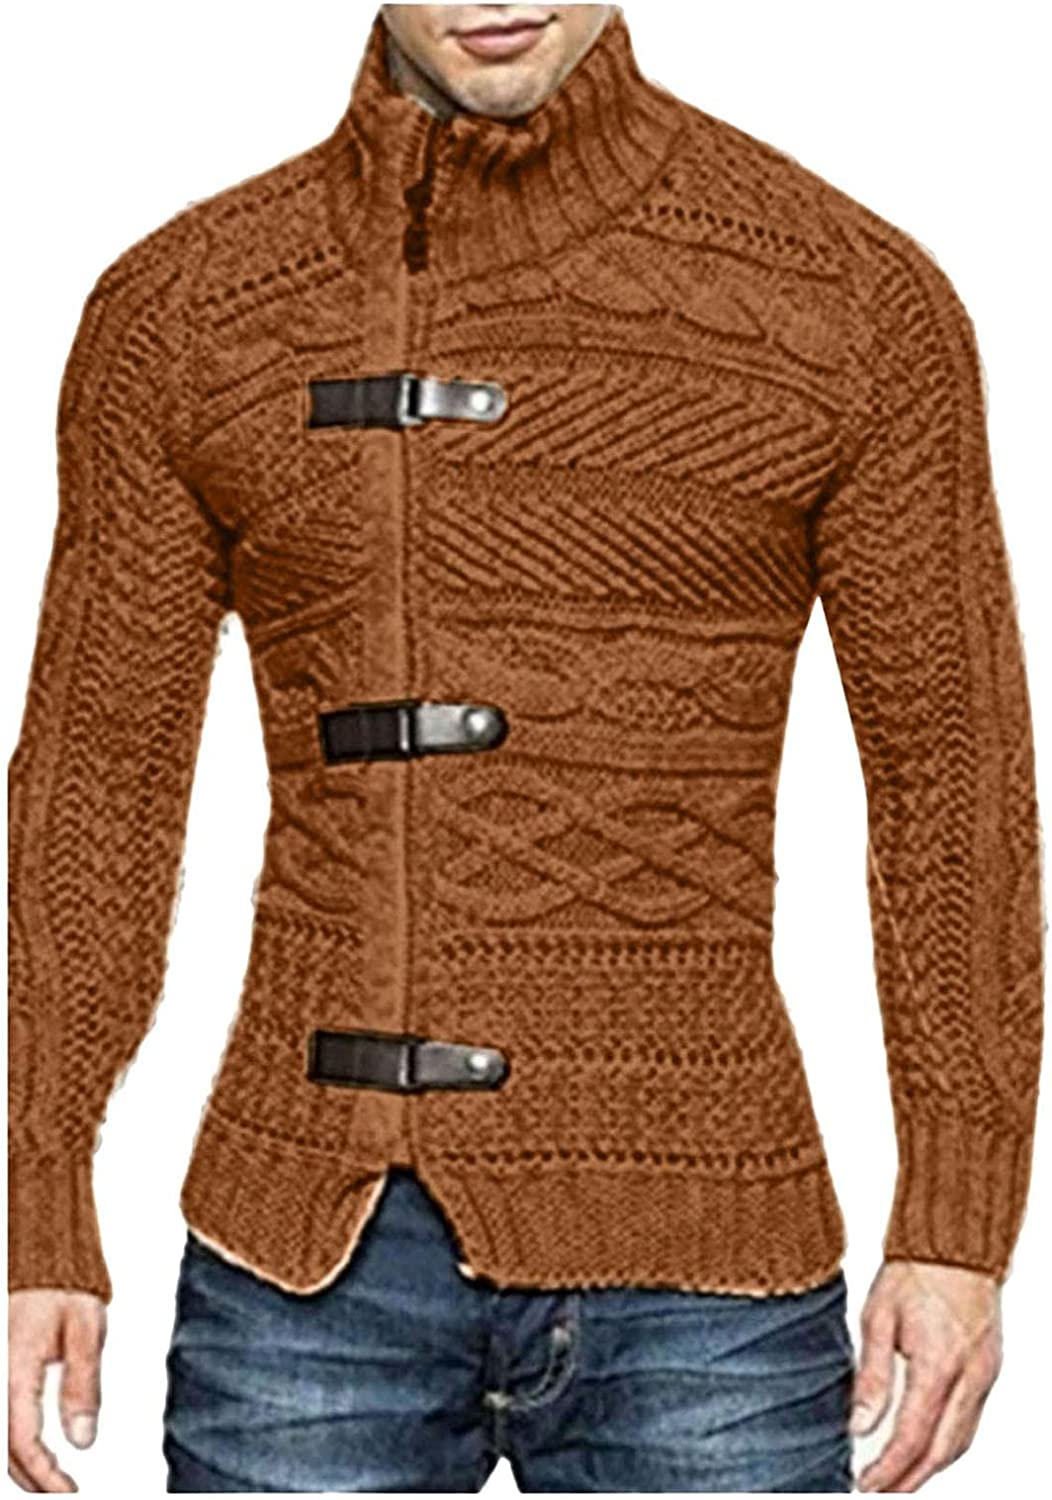 Mens Sweater, Mens Cable Knit Cardigan Sweater Button Down Long Sleeve Fall Winter Chunky Knitted Turtleneck Cardigans